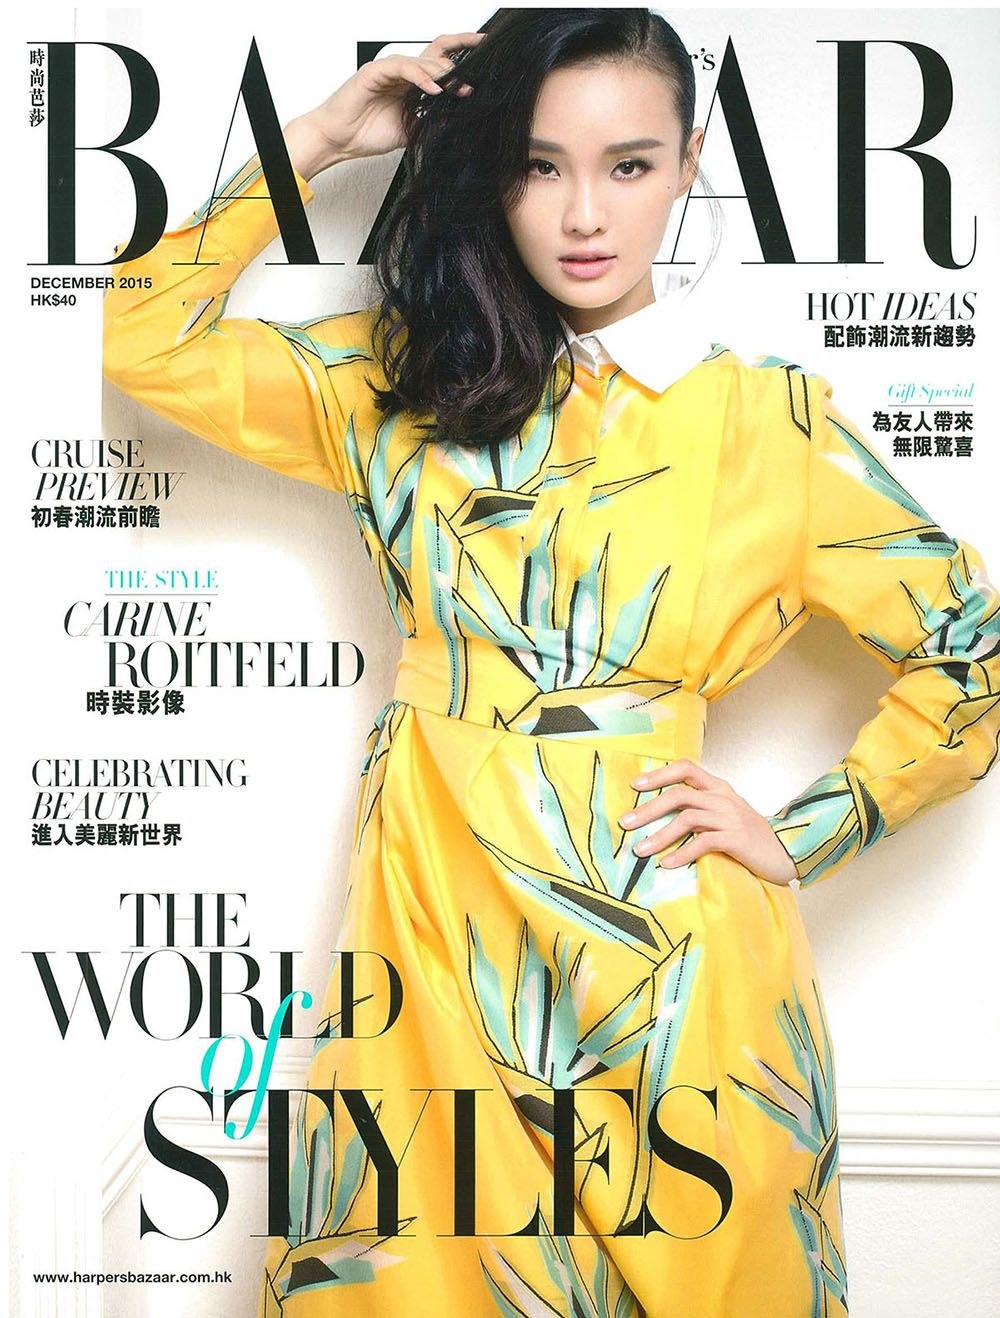 The signature fendi resort long dress spotted on the cover of